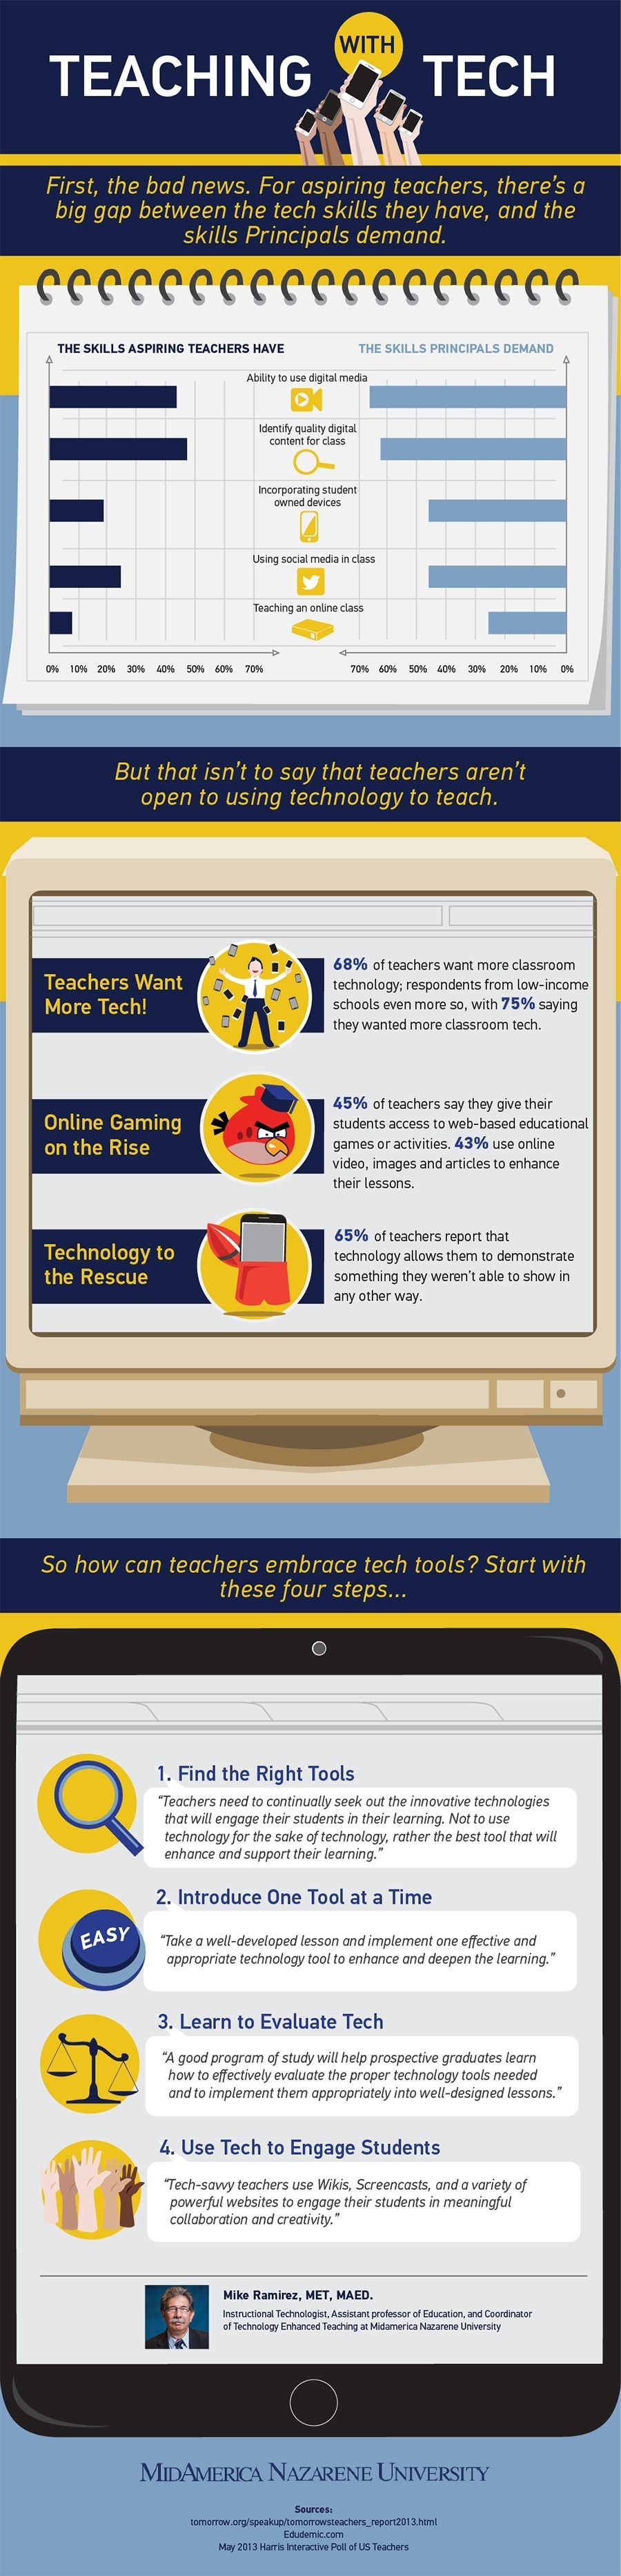 Teaching with Technology Infographic